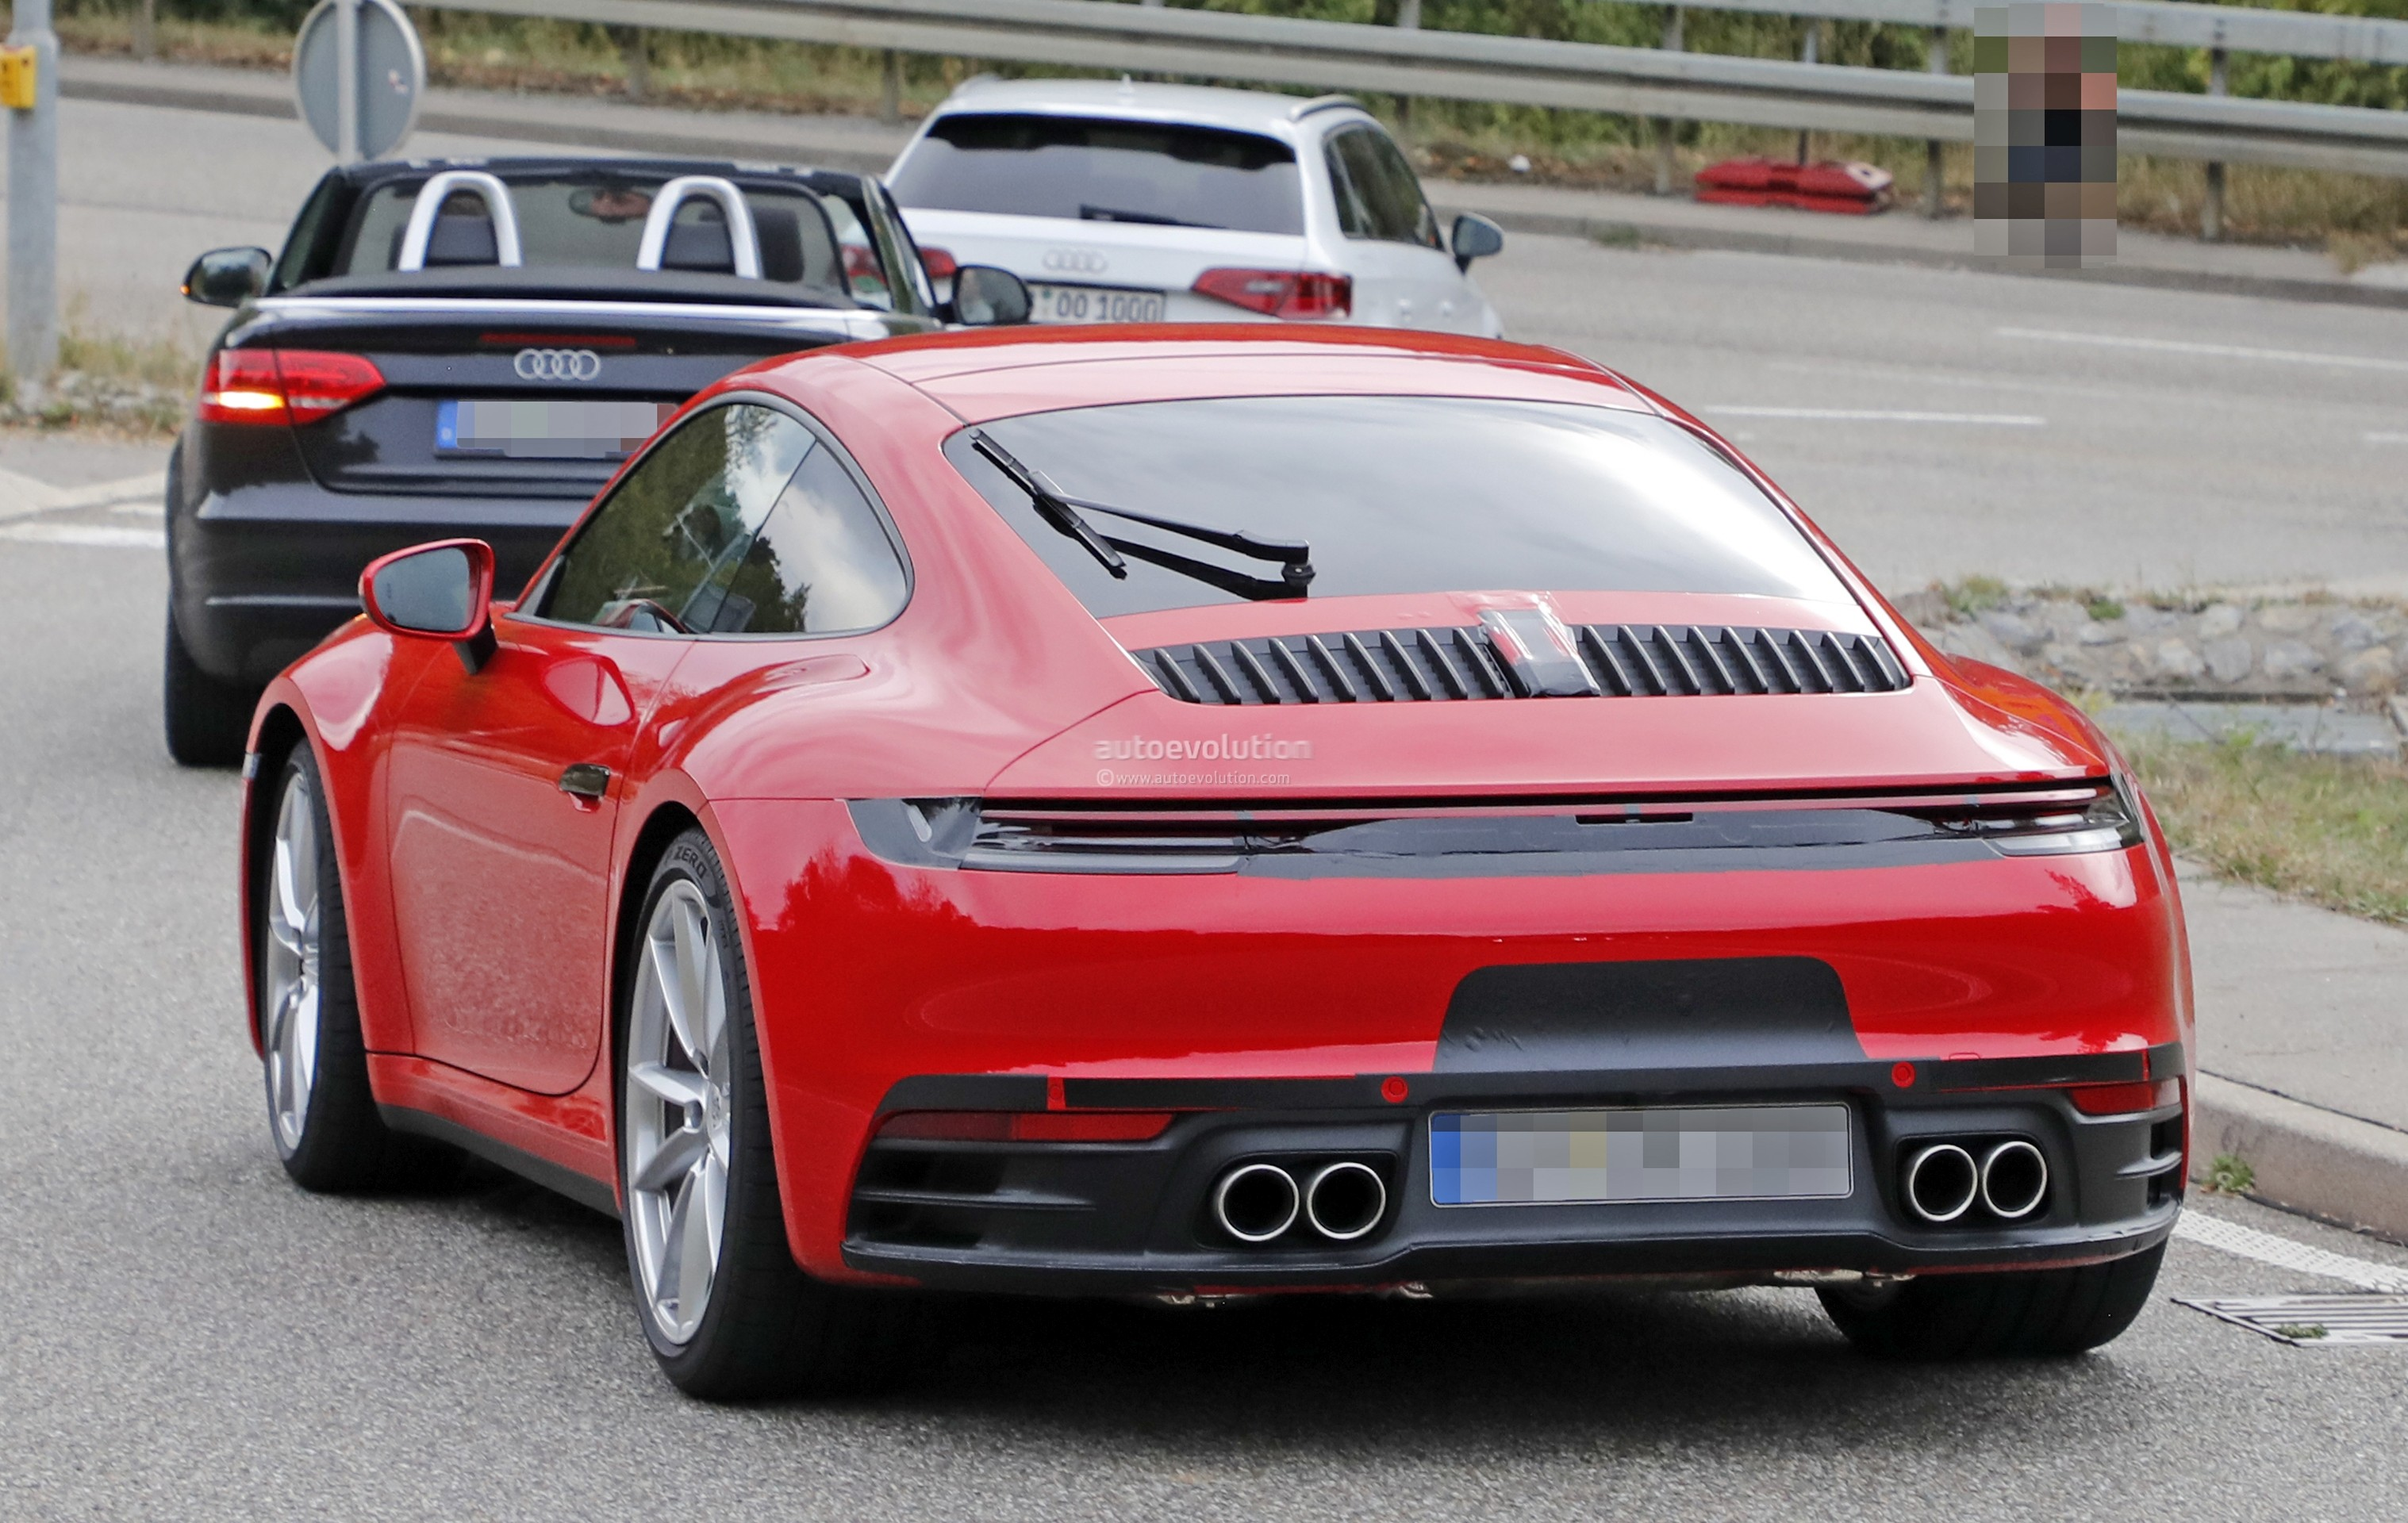 2019 Porsche 911 Revealed by Naked Nurburgring Prototype